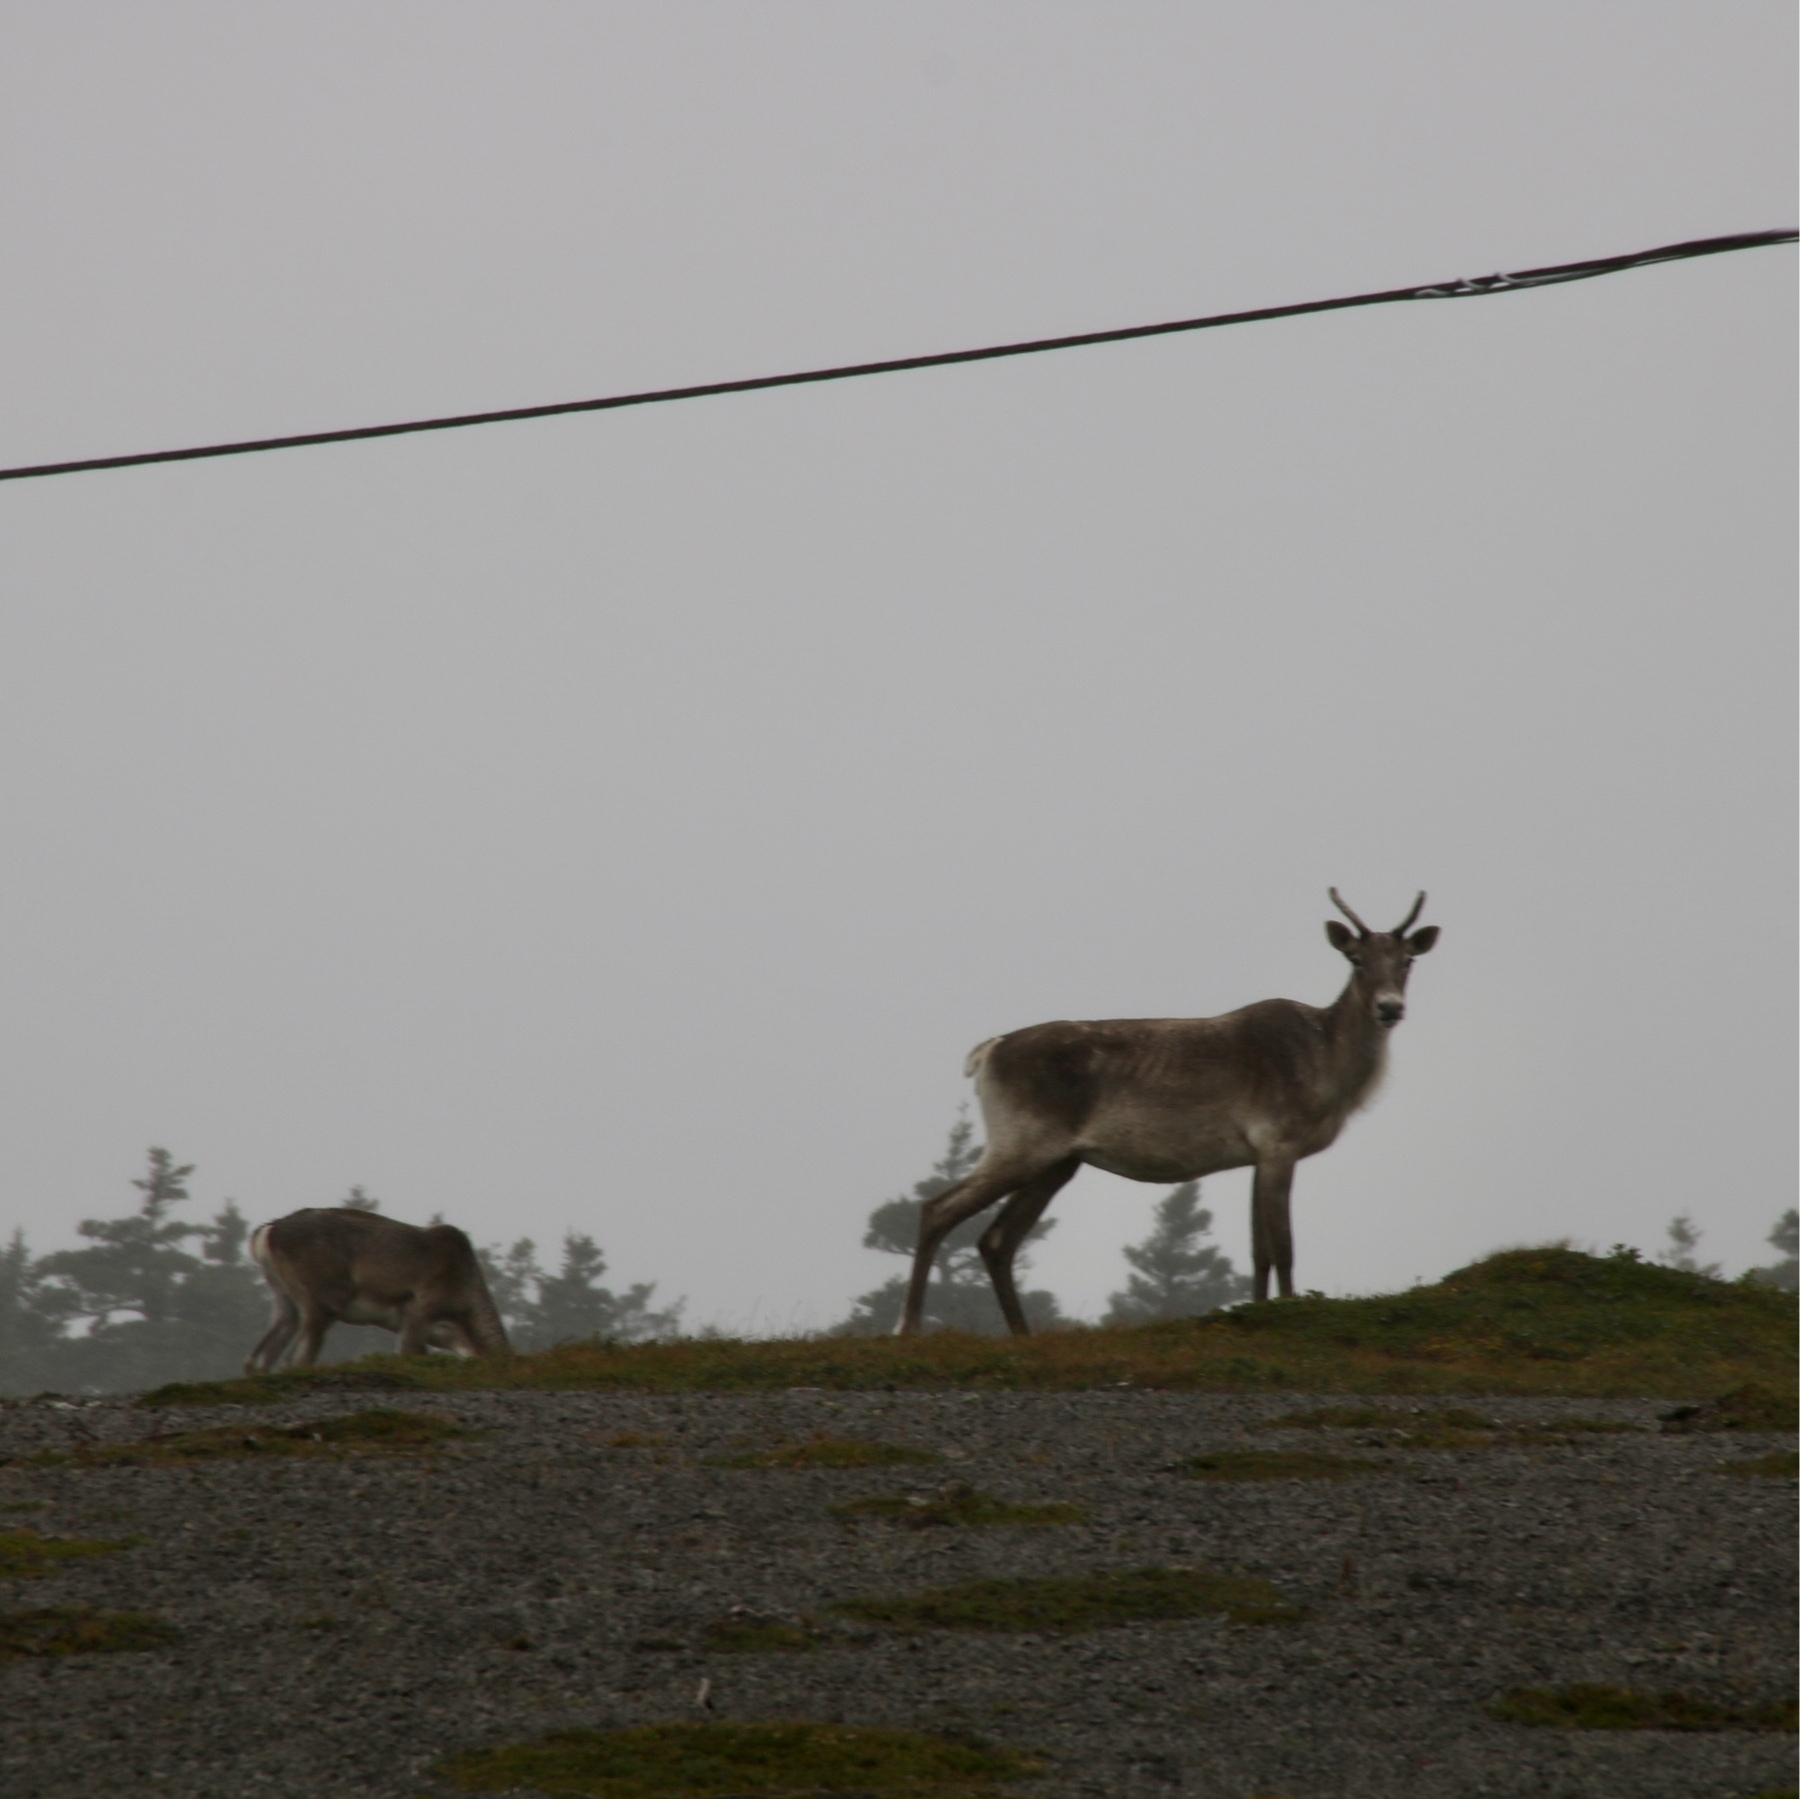 adult caribou with antlers. baby caribou in the background. the foreground is gravel and there are a few trees in the background